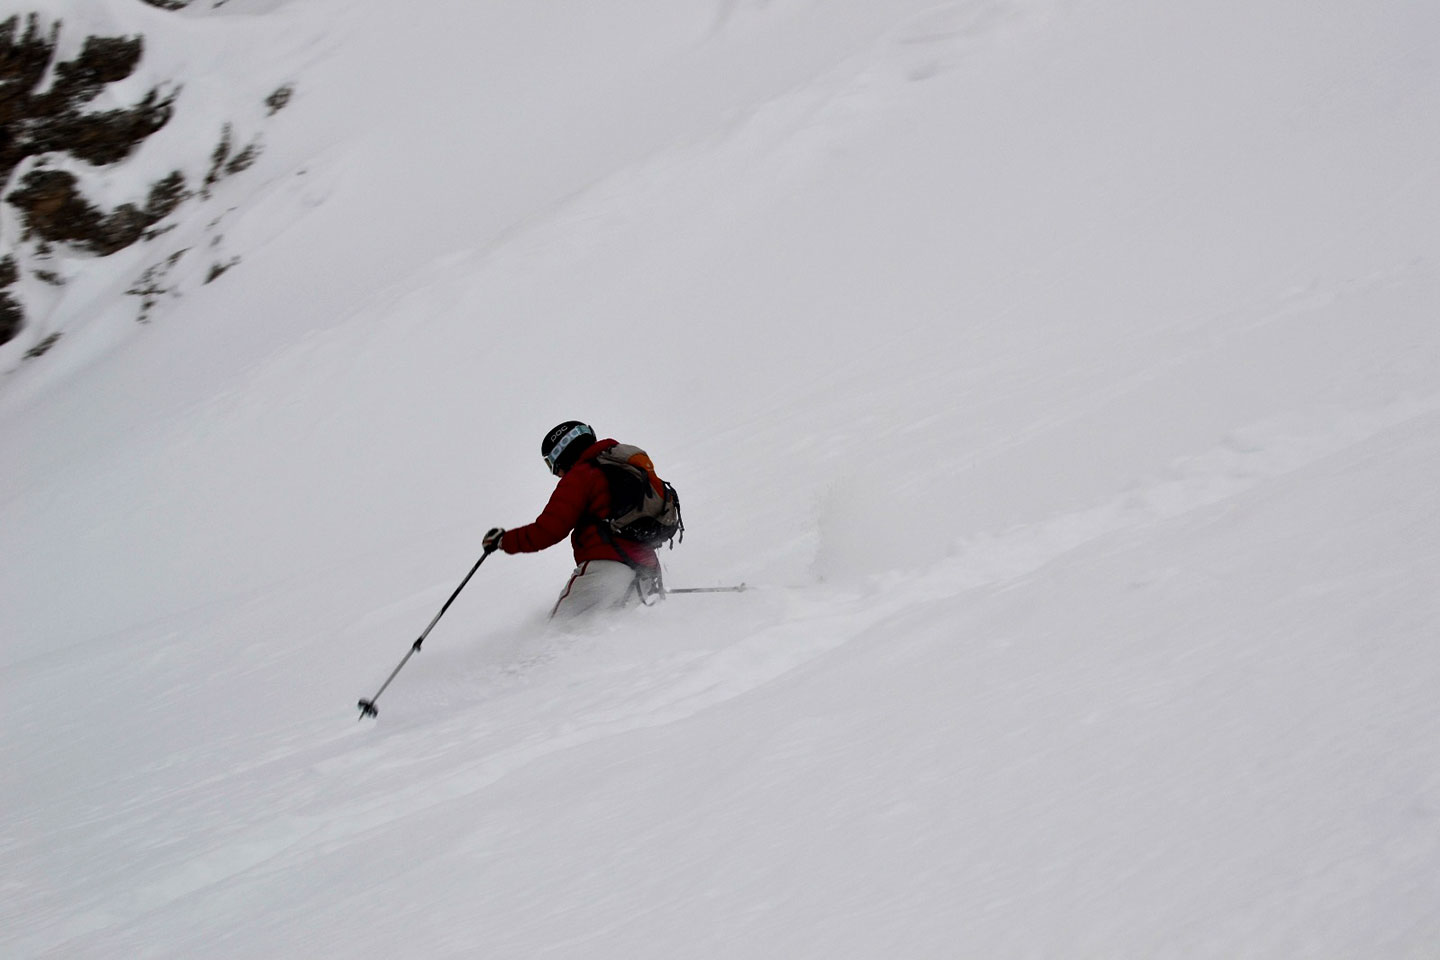 Ski Mountaineering to Creste Bianche at Monte Cristallo